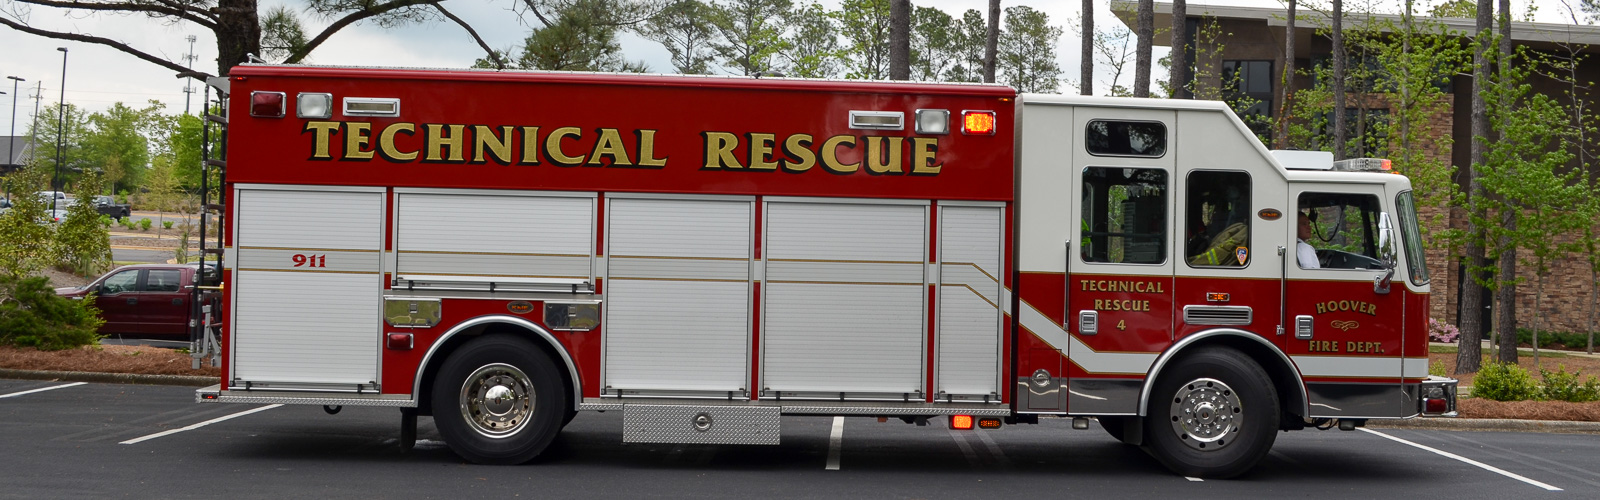 Hoover Fire Department Technical Rescue